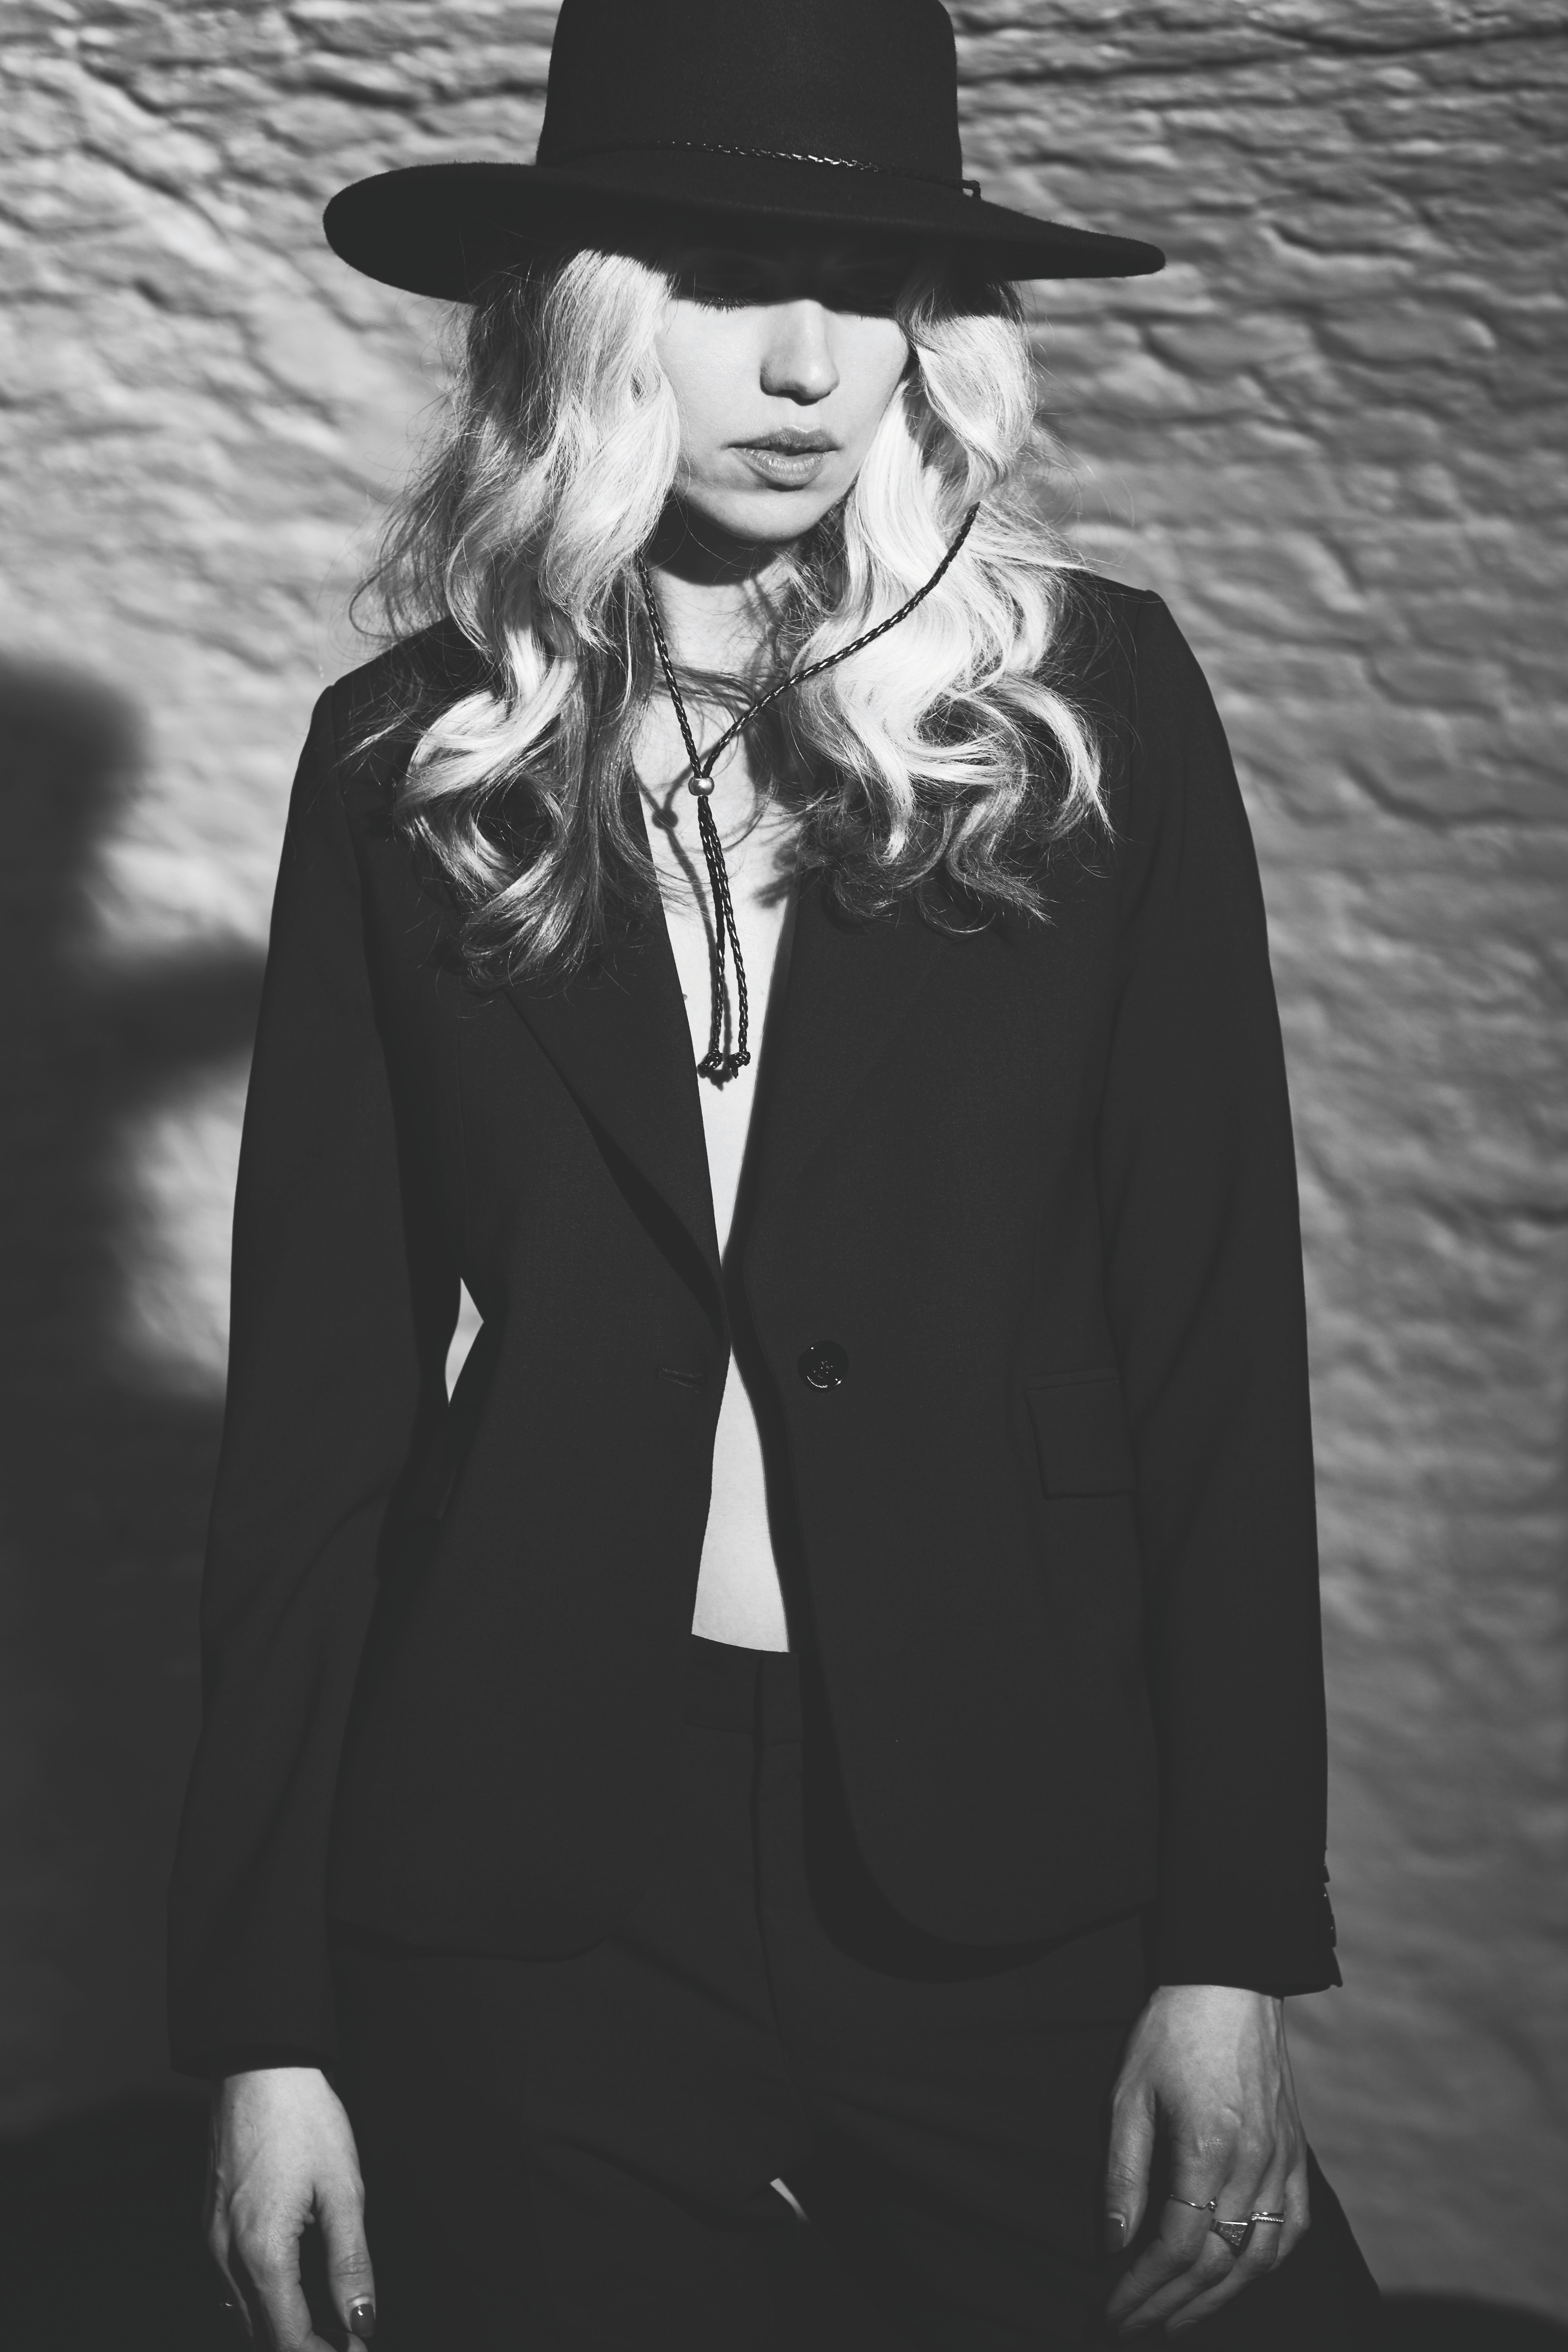 grayscale photography of woman in suit wearing hat